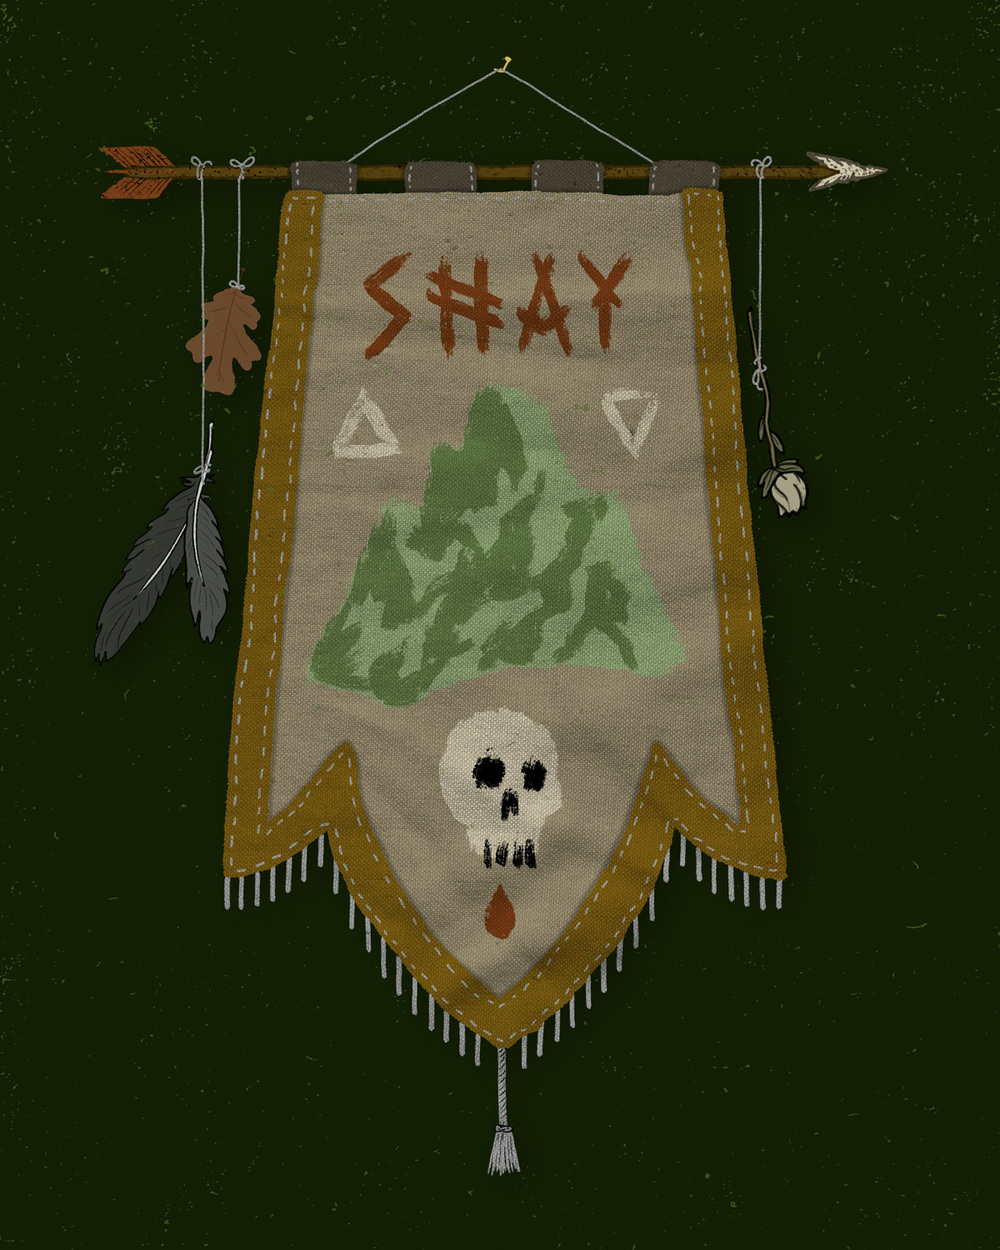 JLxCreatrs-WGNA-Outsiders-Concept1-Banners-2-Shay.jpg